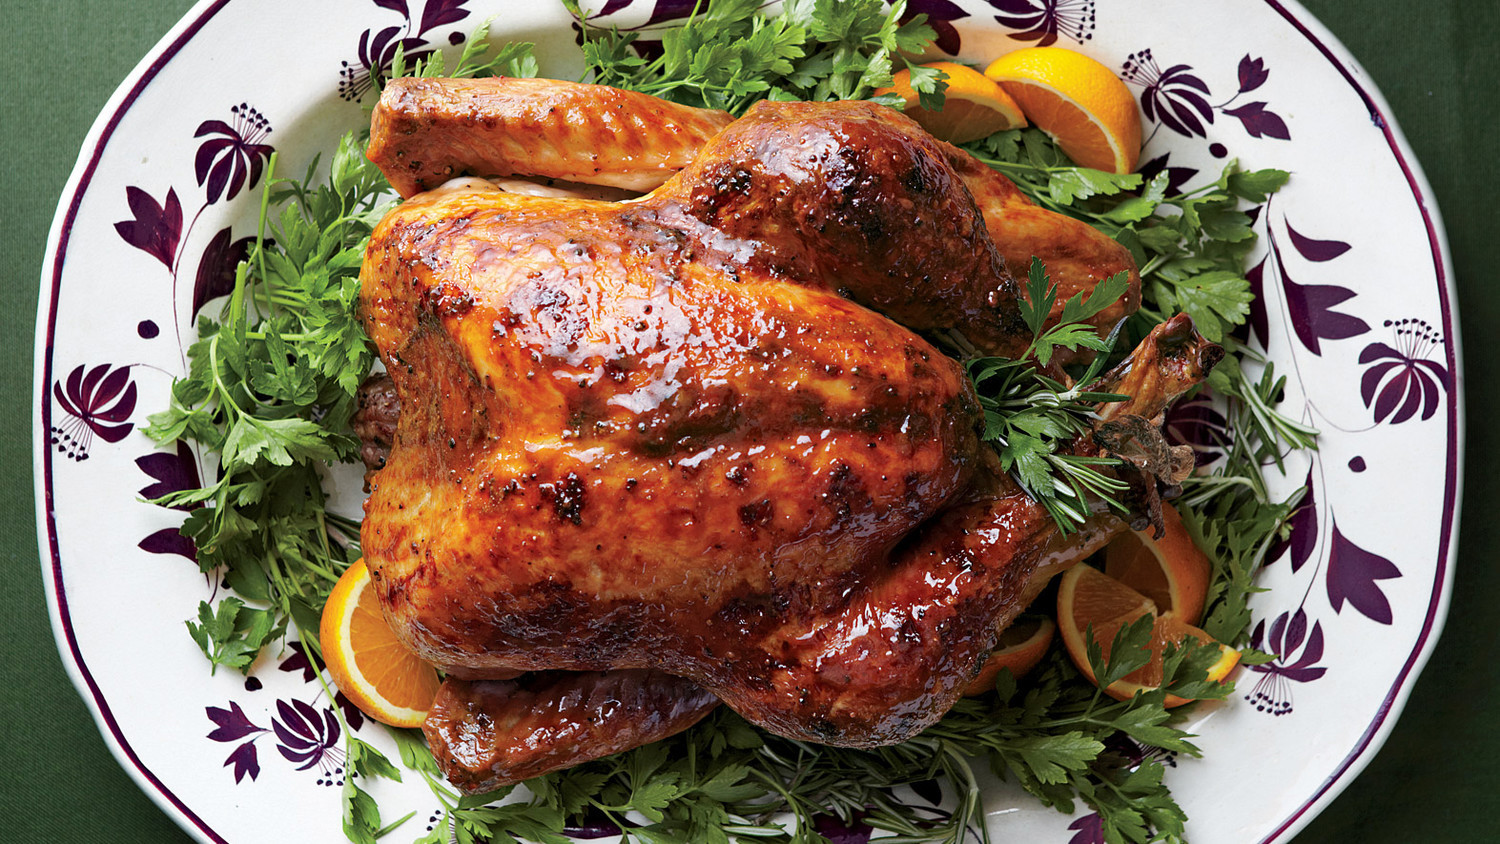 Turkey Pictures For Thanksgiving  Turkey with Brown Sugar Glaze Recipe & Video